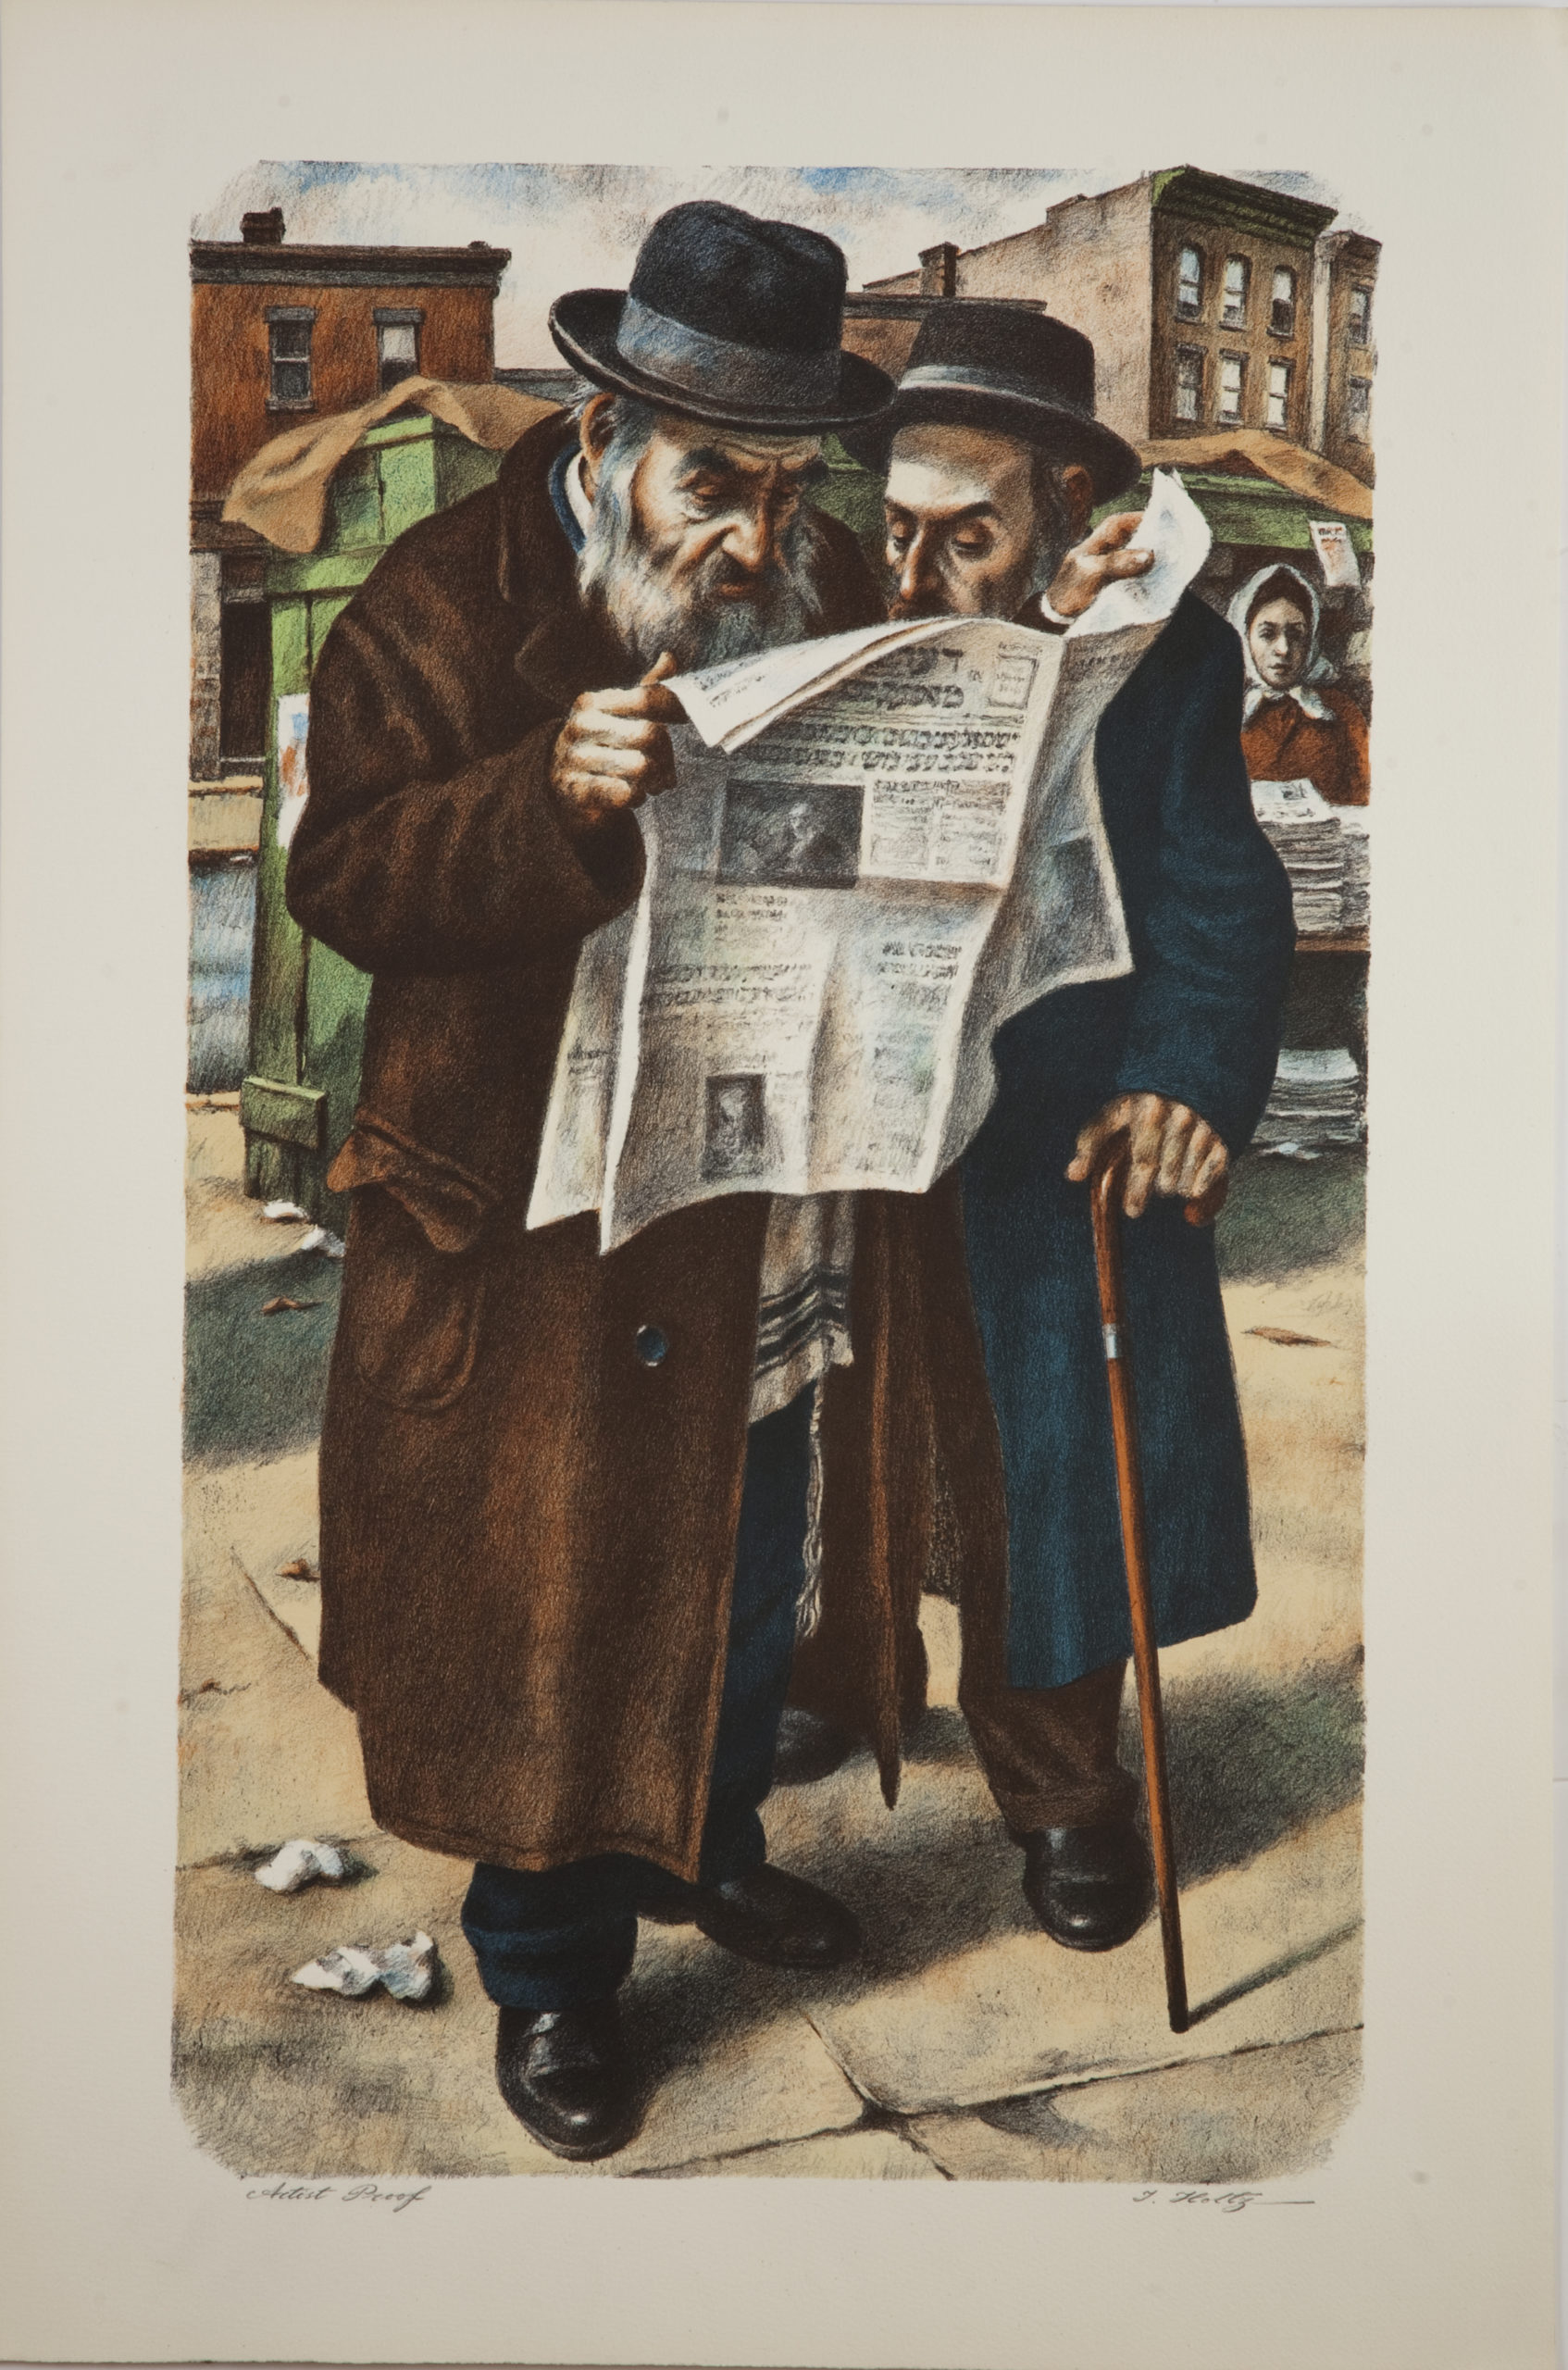 L19C Reading the Newspaper - Color - Lithograph - 20 x 30 - No Frame